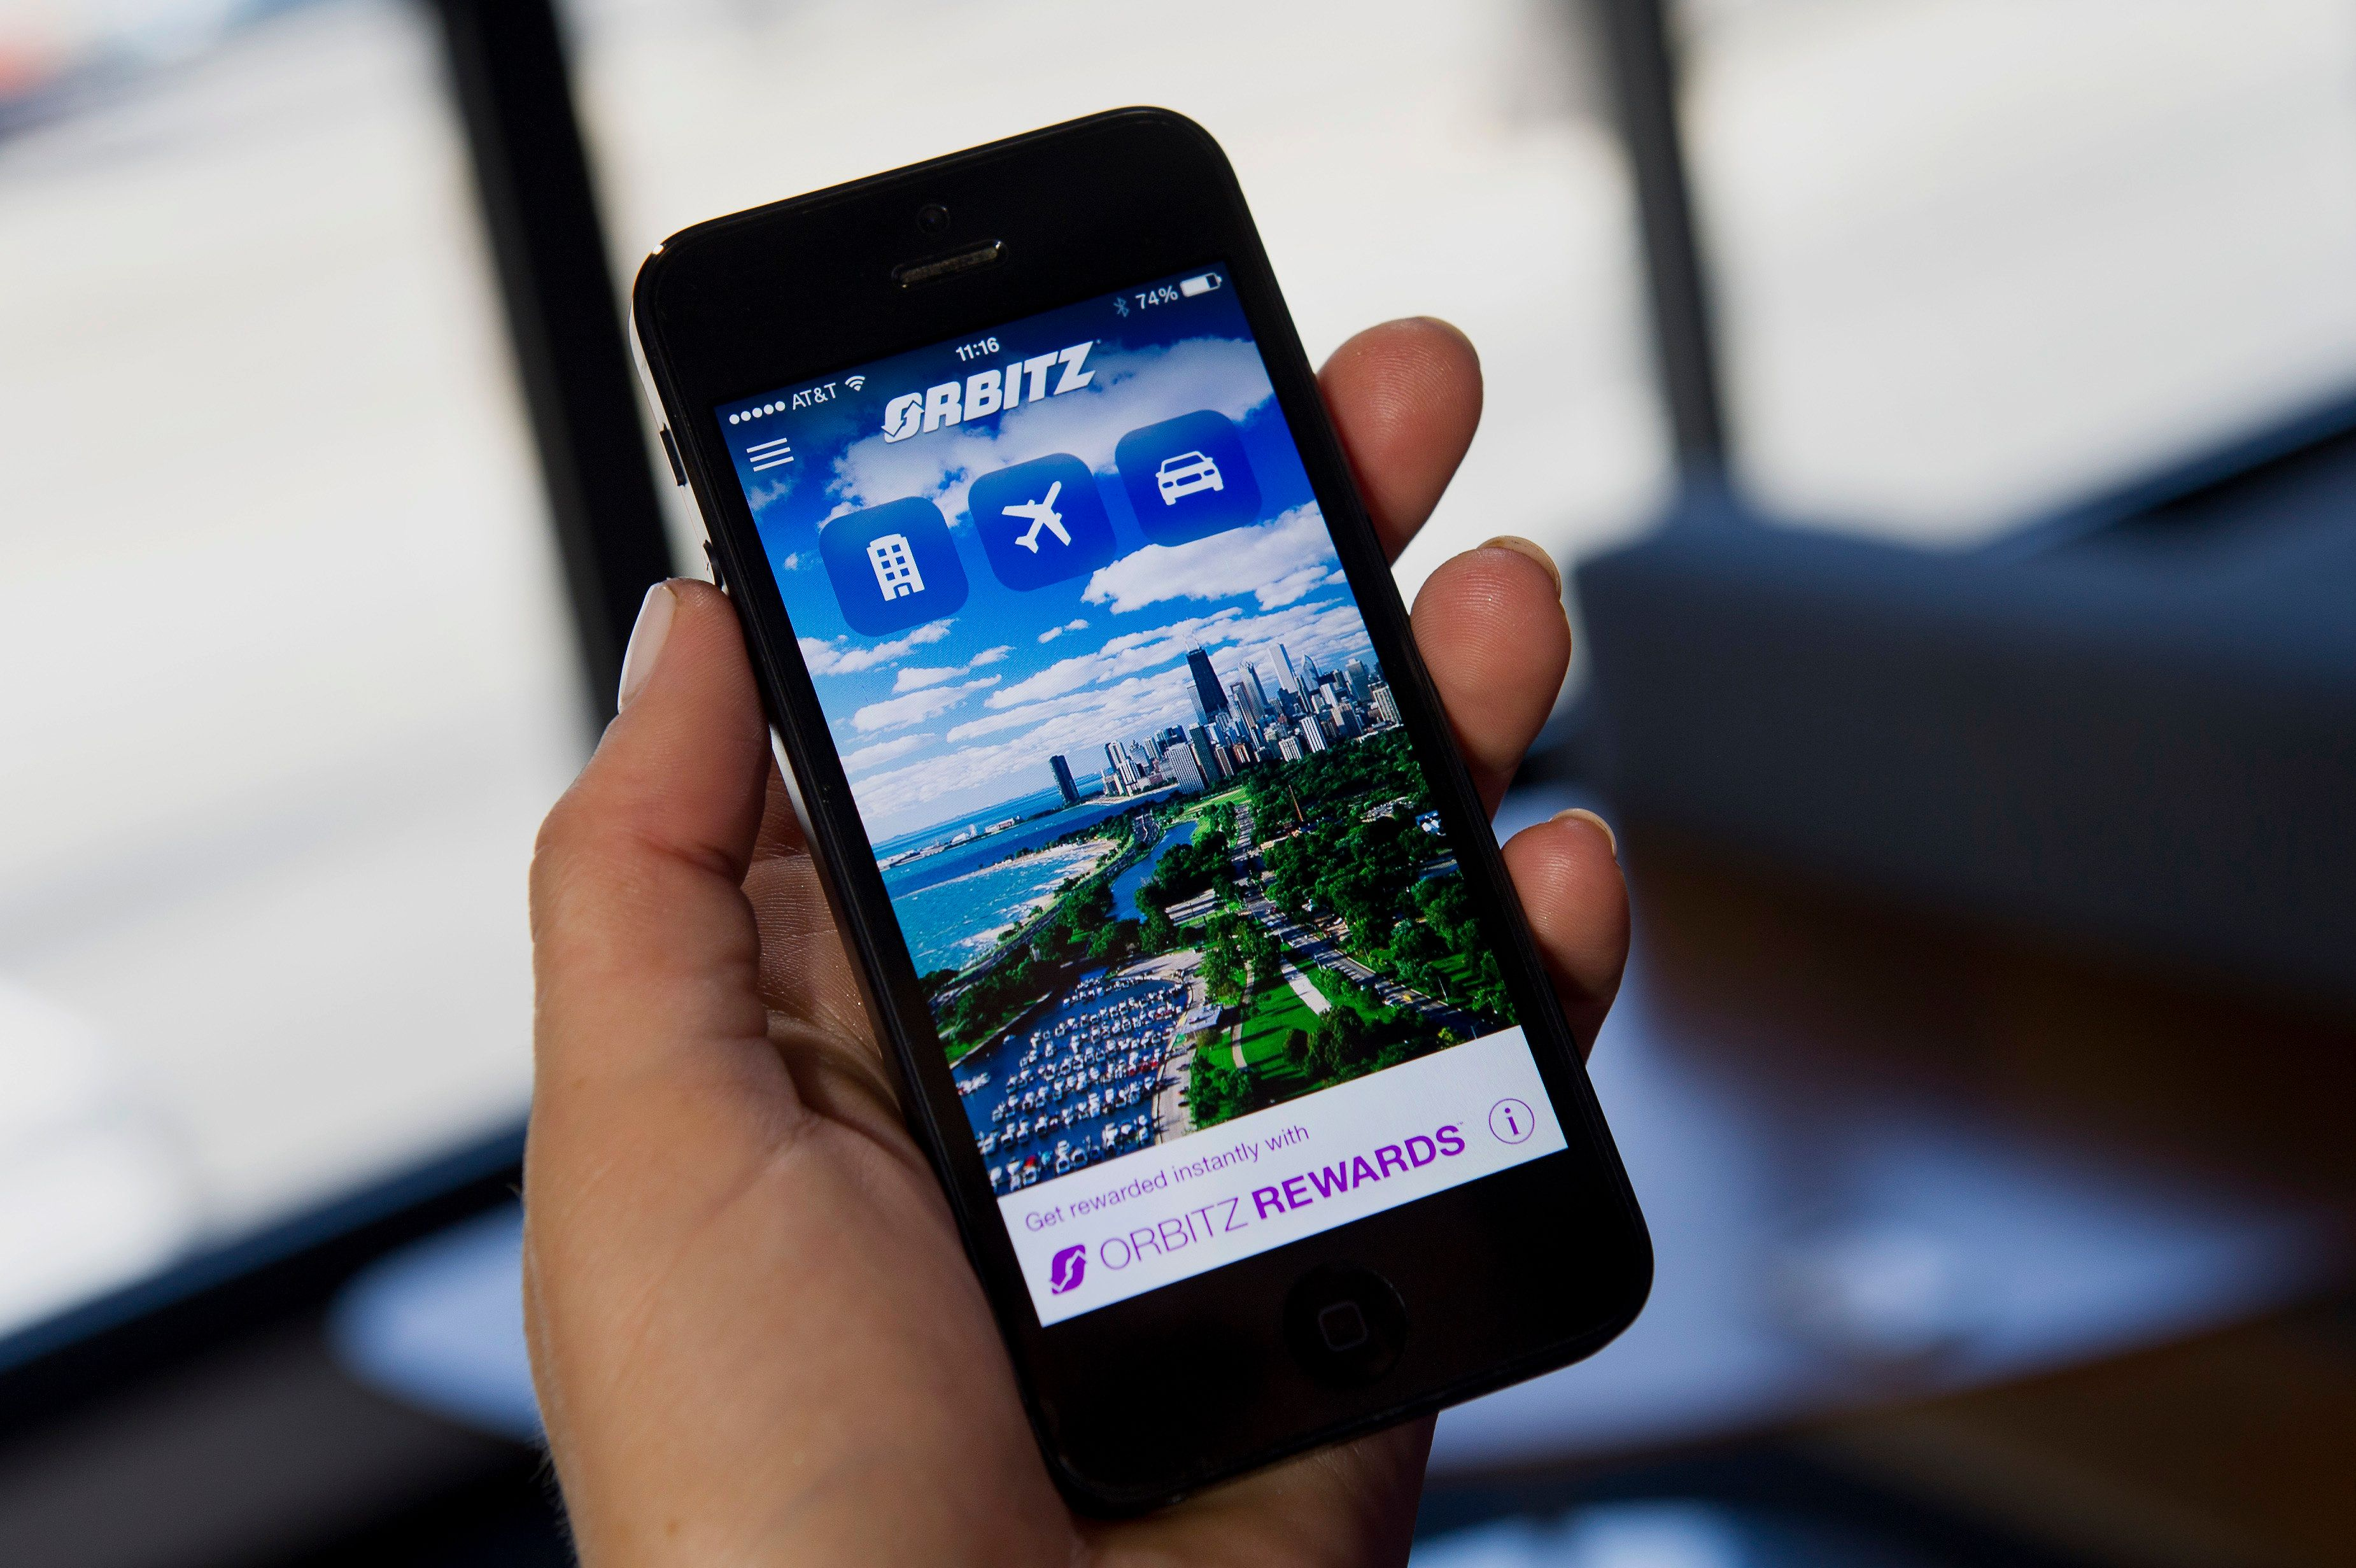 The Orbitz Worldwide Inc. application (app) is displayed for a photograph on an Apple Inc. iPhone 5 in San Francisco, California, U.S., on Friday, Aug. 8, 2014. Orbitz Worldwide Inc.'s second-quarter earnings surged as the travel-booking website benefited from higher demand. Photographer: David Paul Morris/Bloomberg via Getty Images